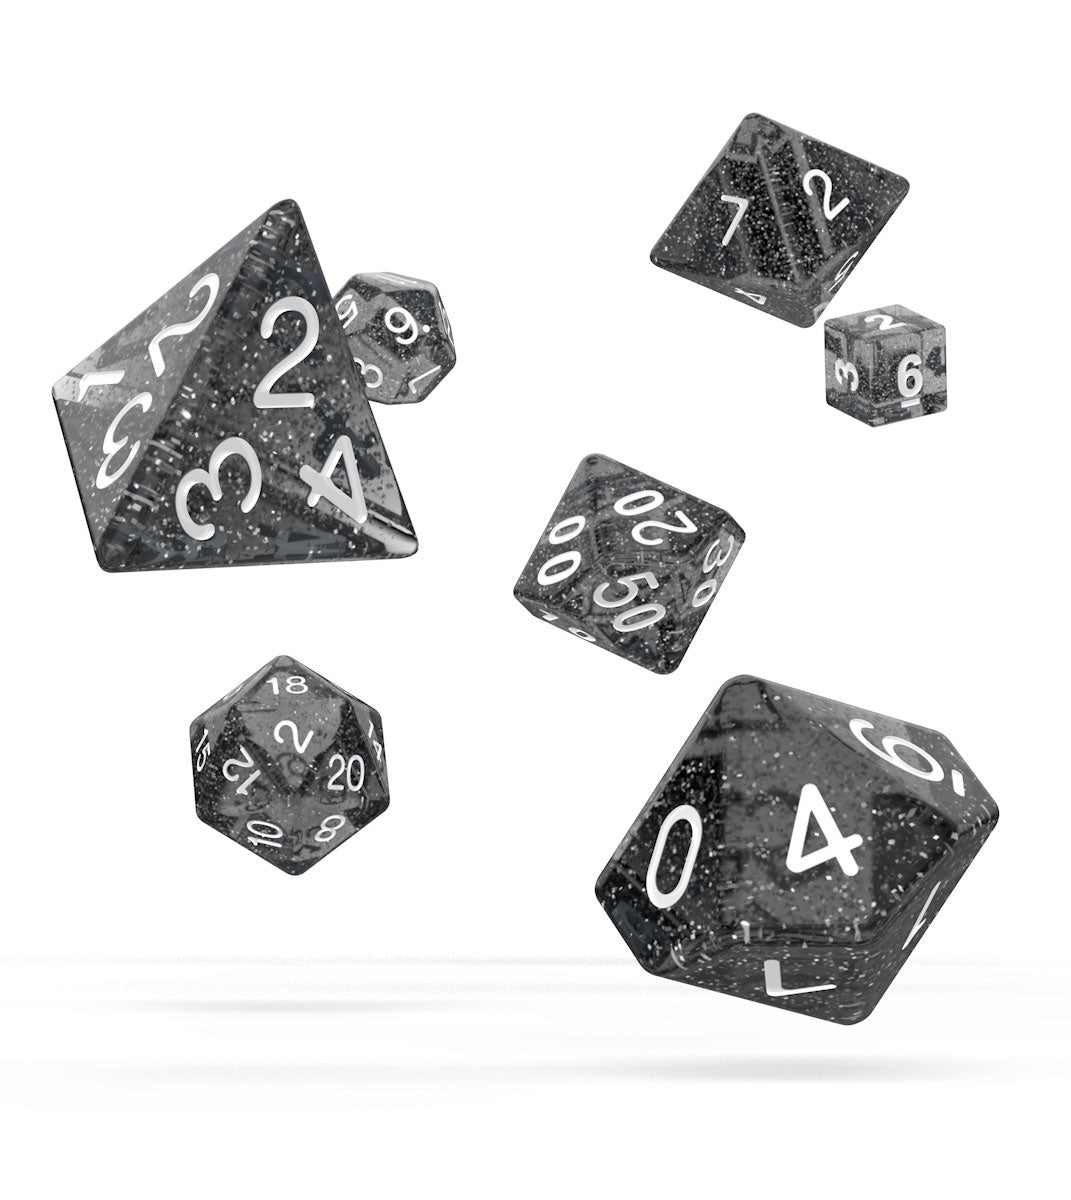 OD Dice RPG Set Speckled - Black | Comic Shop Crawley